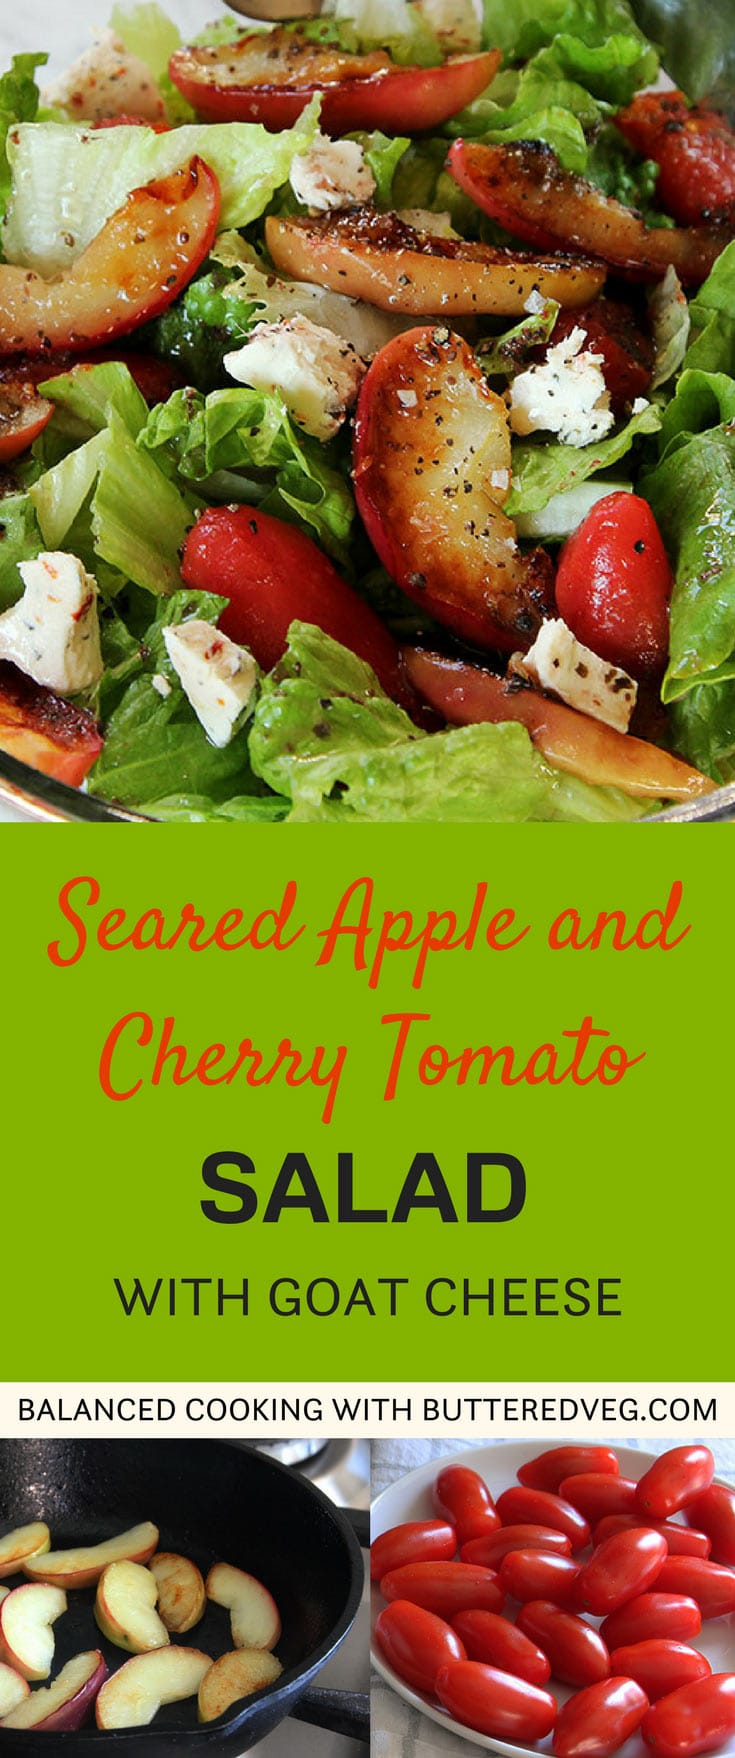 Seared Apple and Cherry Tomato Salad with Goat Cheese